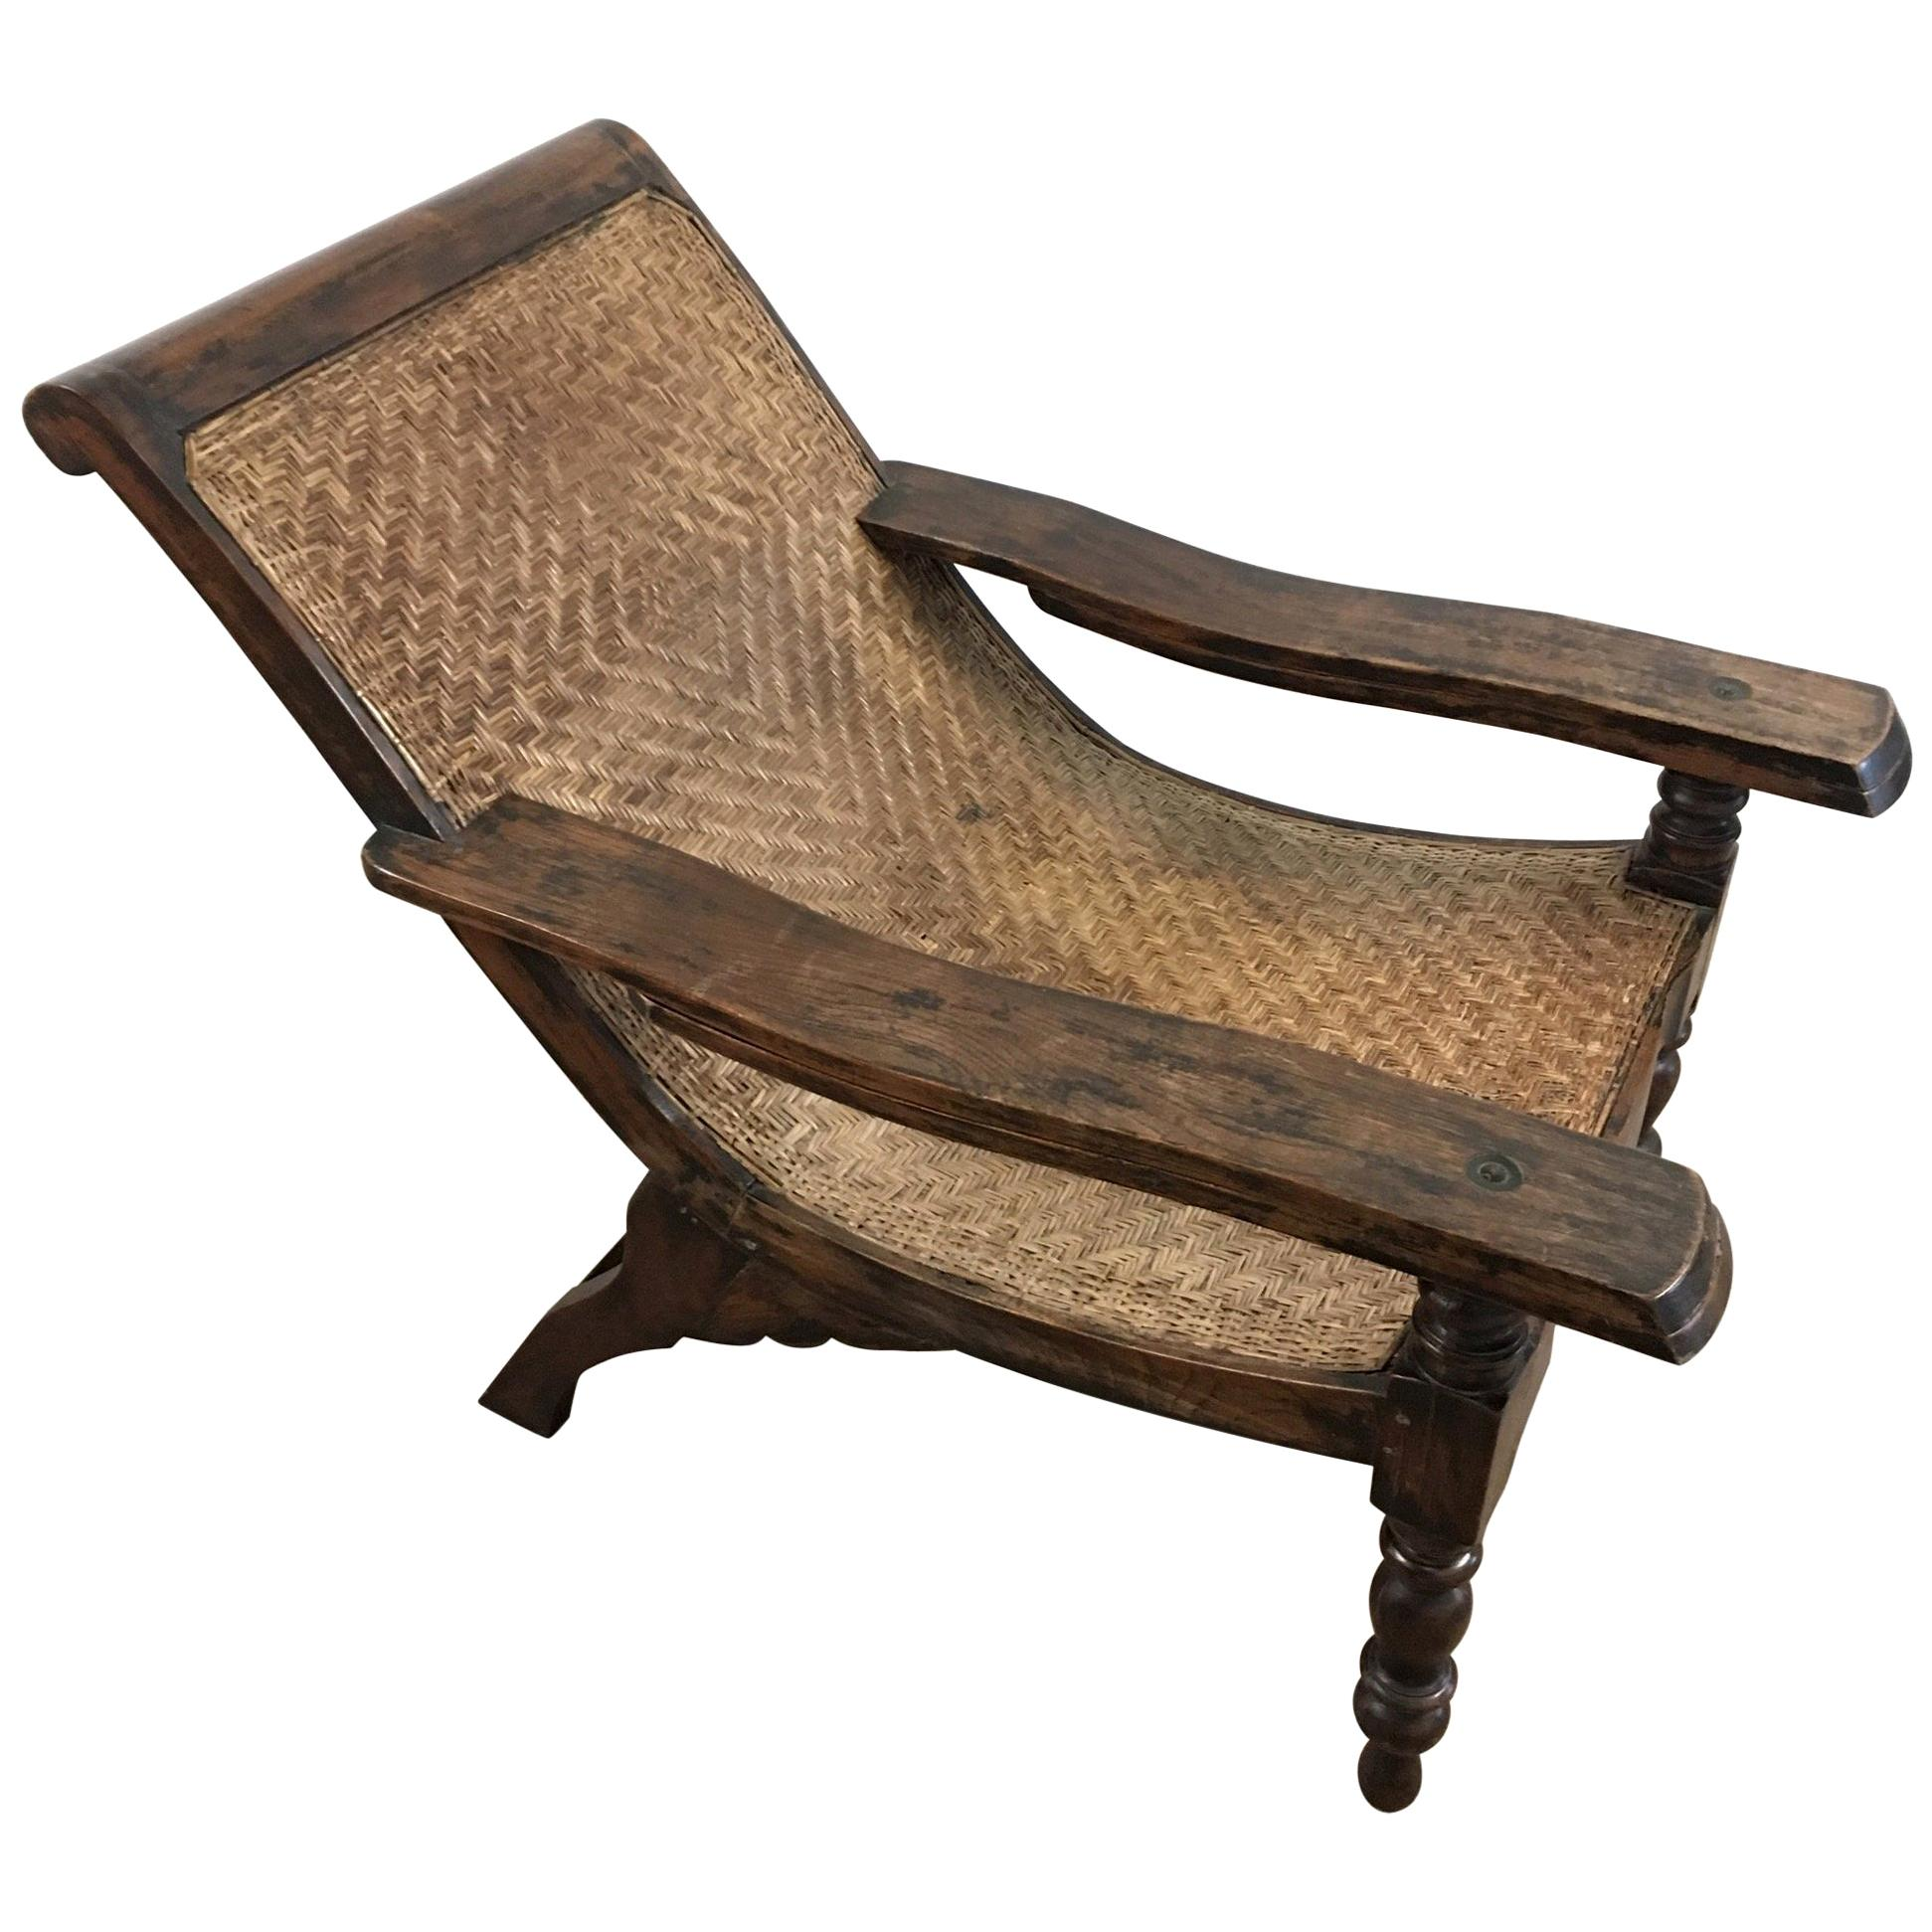 Stupendous Early 20Th Century Weathered Teak Colonial Plantation Lounger Chair Ocoug Best Dining Table And Chair Ideas Images Ocougorg